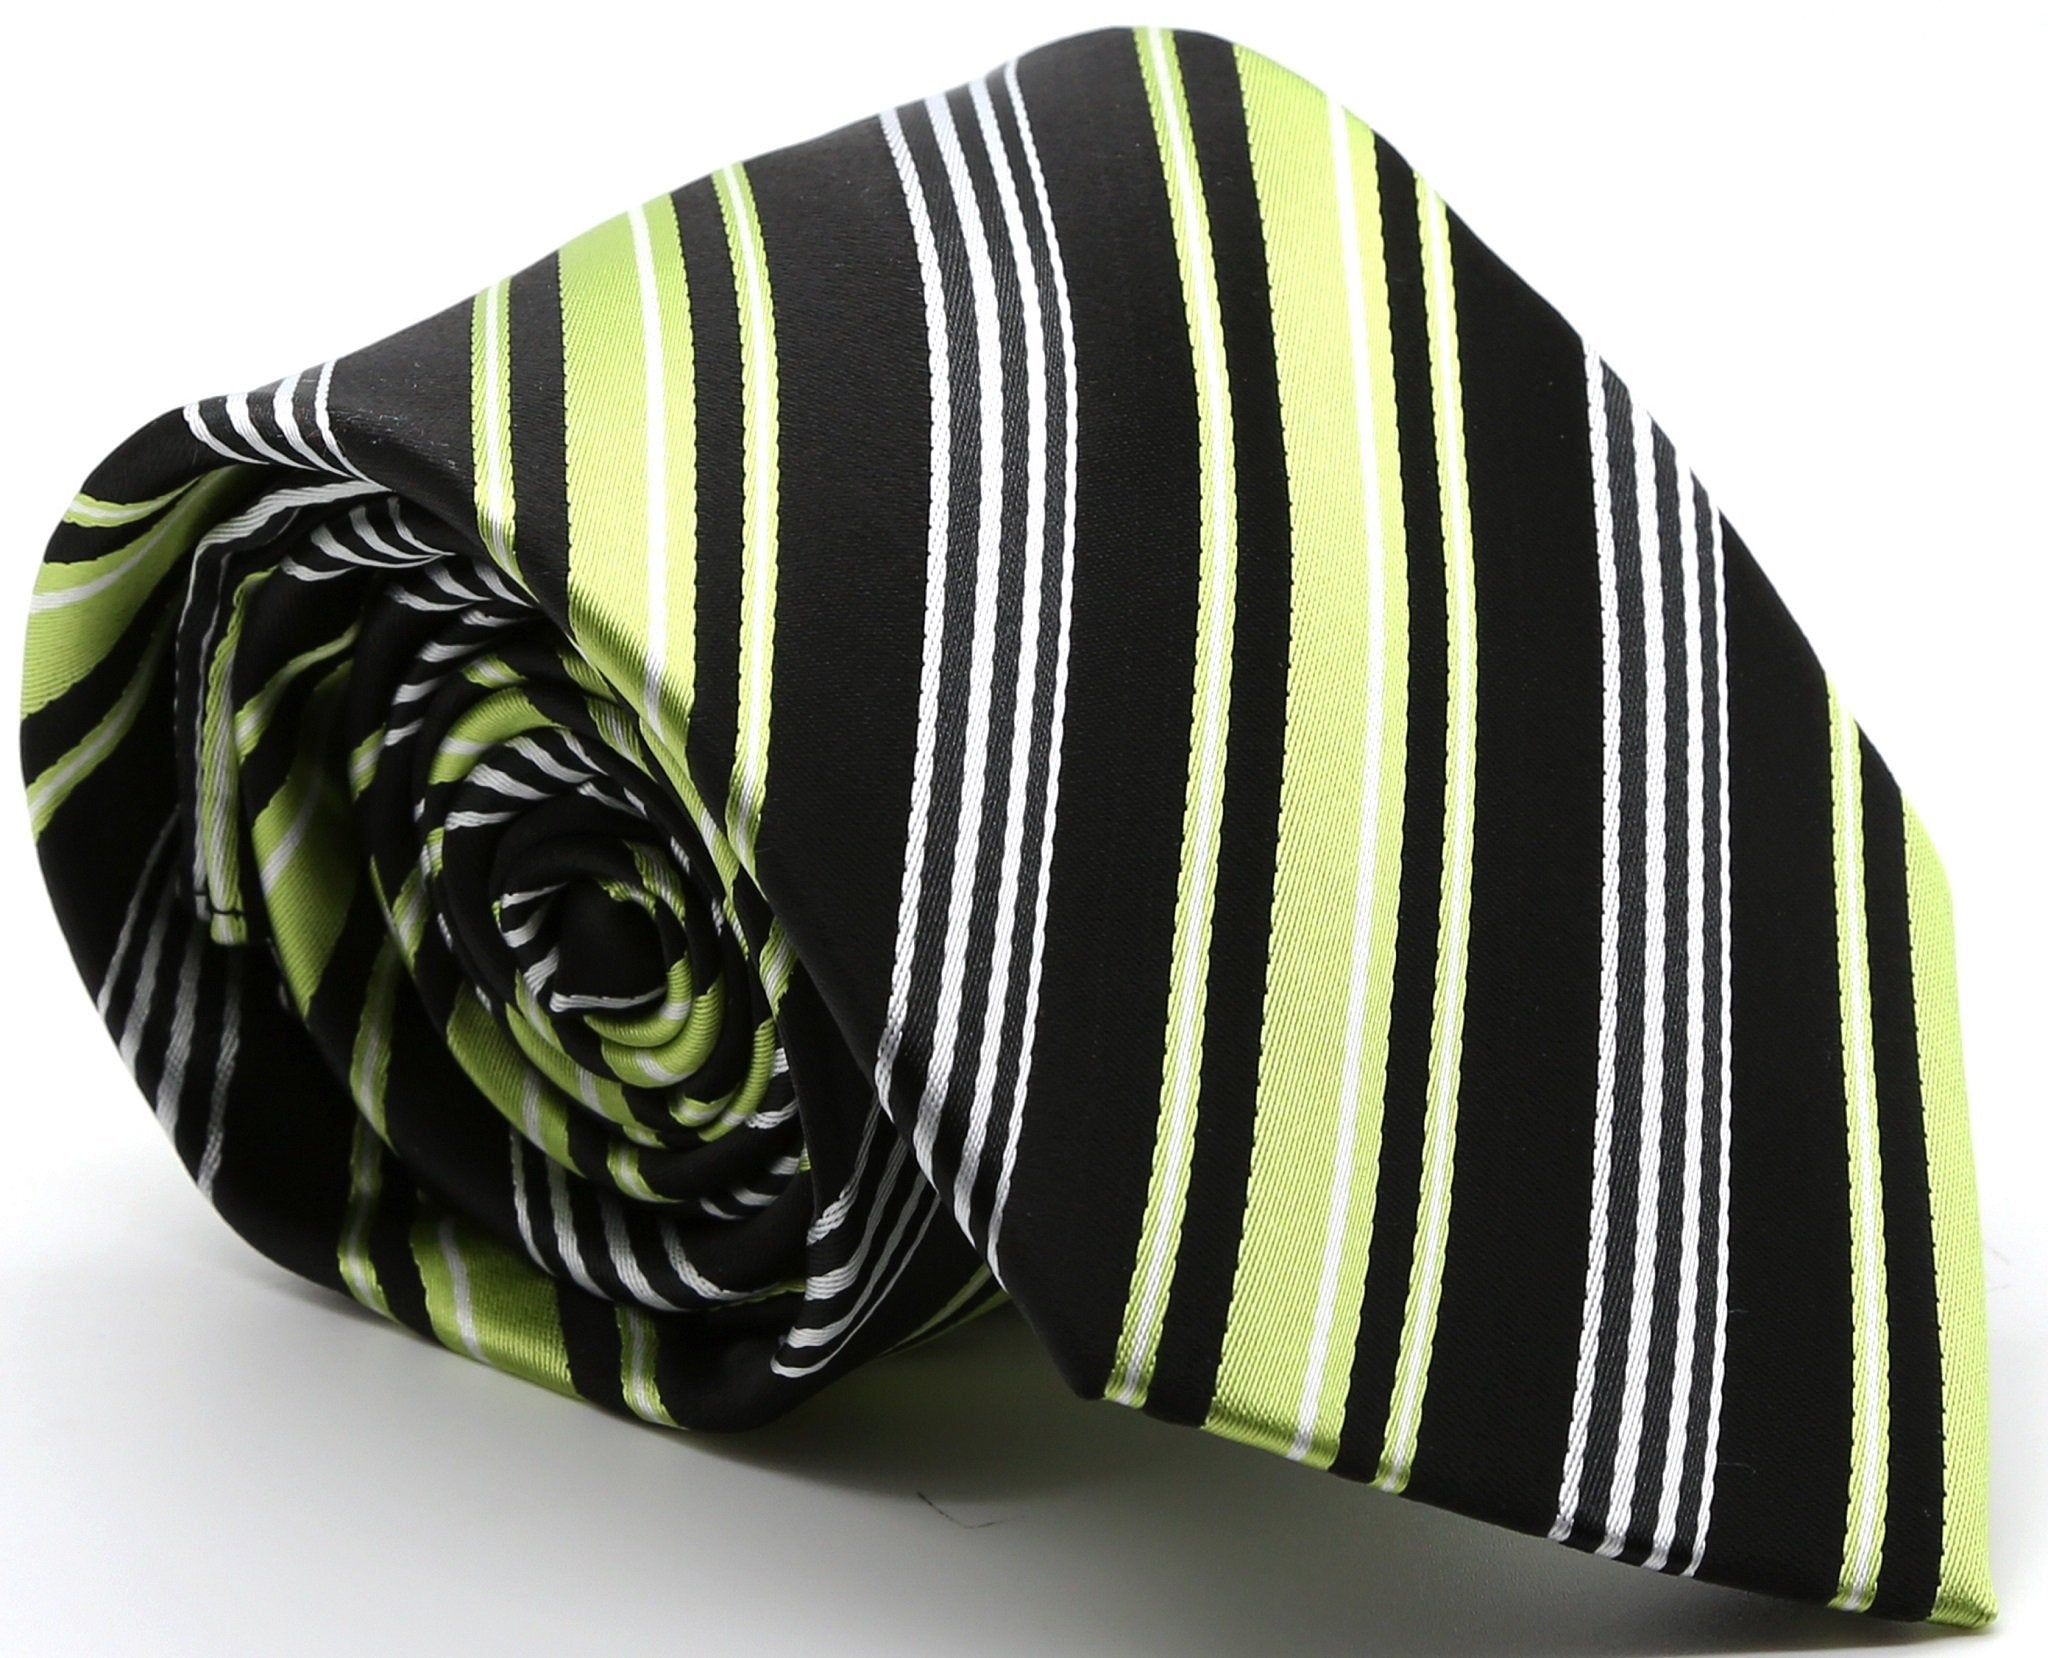 Mens Dads Classic Black Green Striped Pattern Business Casual Necktie & Hanky Set D-2 - Giorgio's Menswear